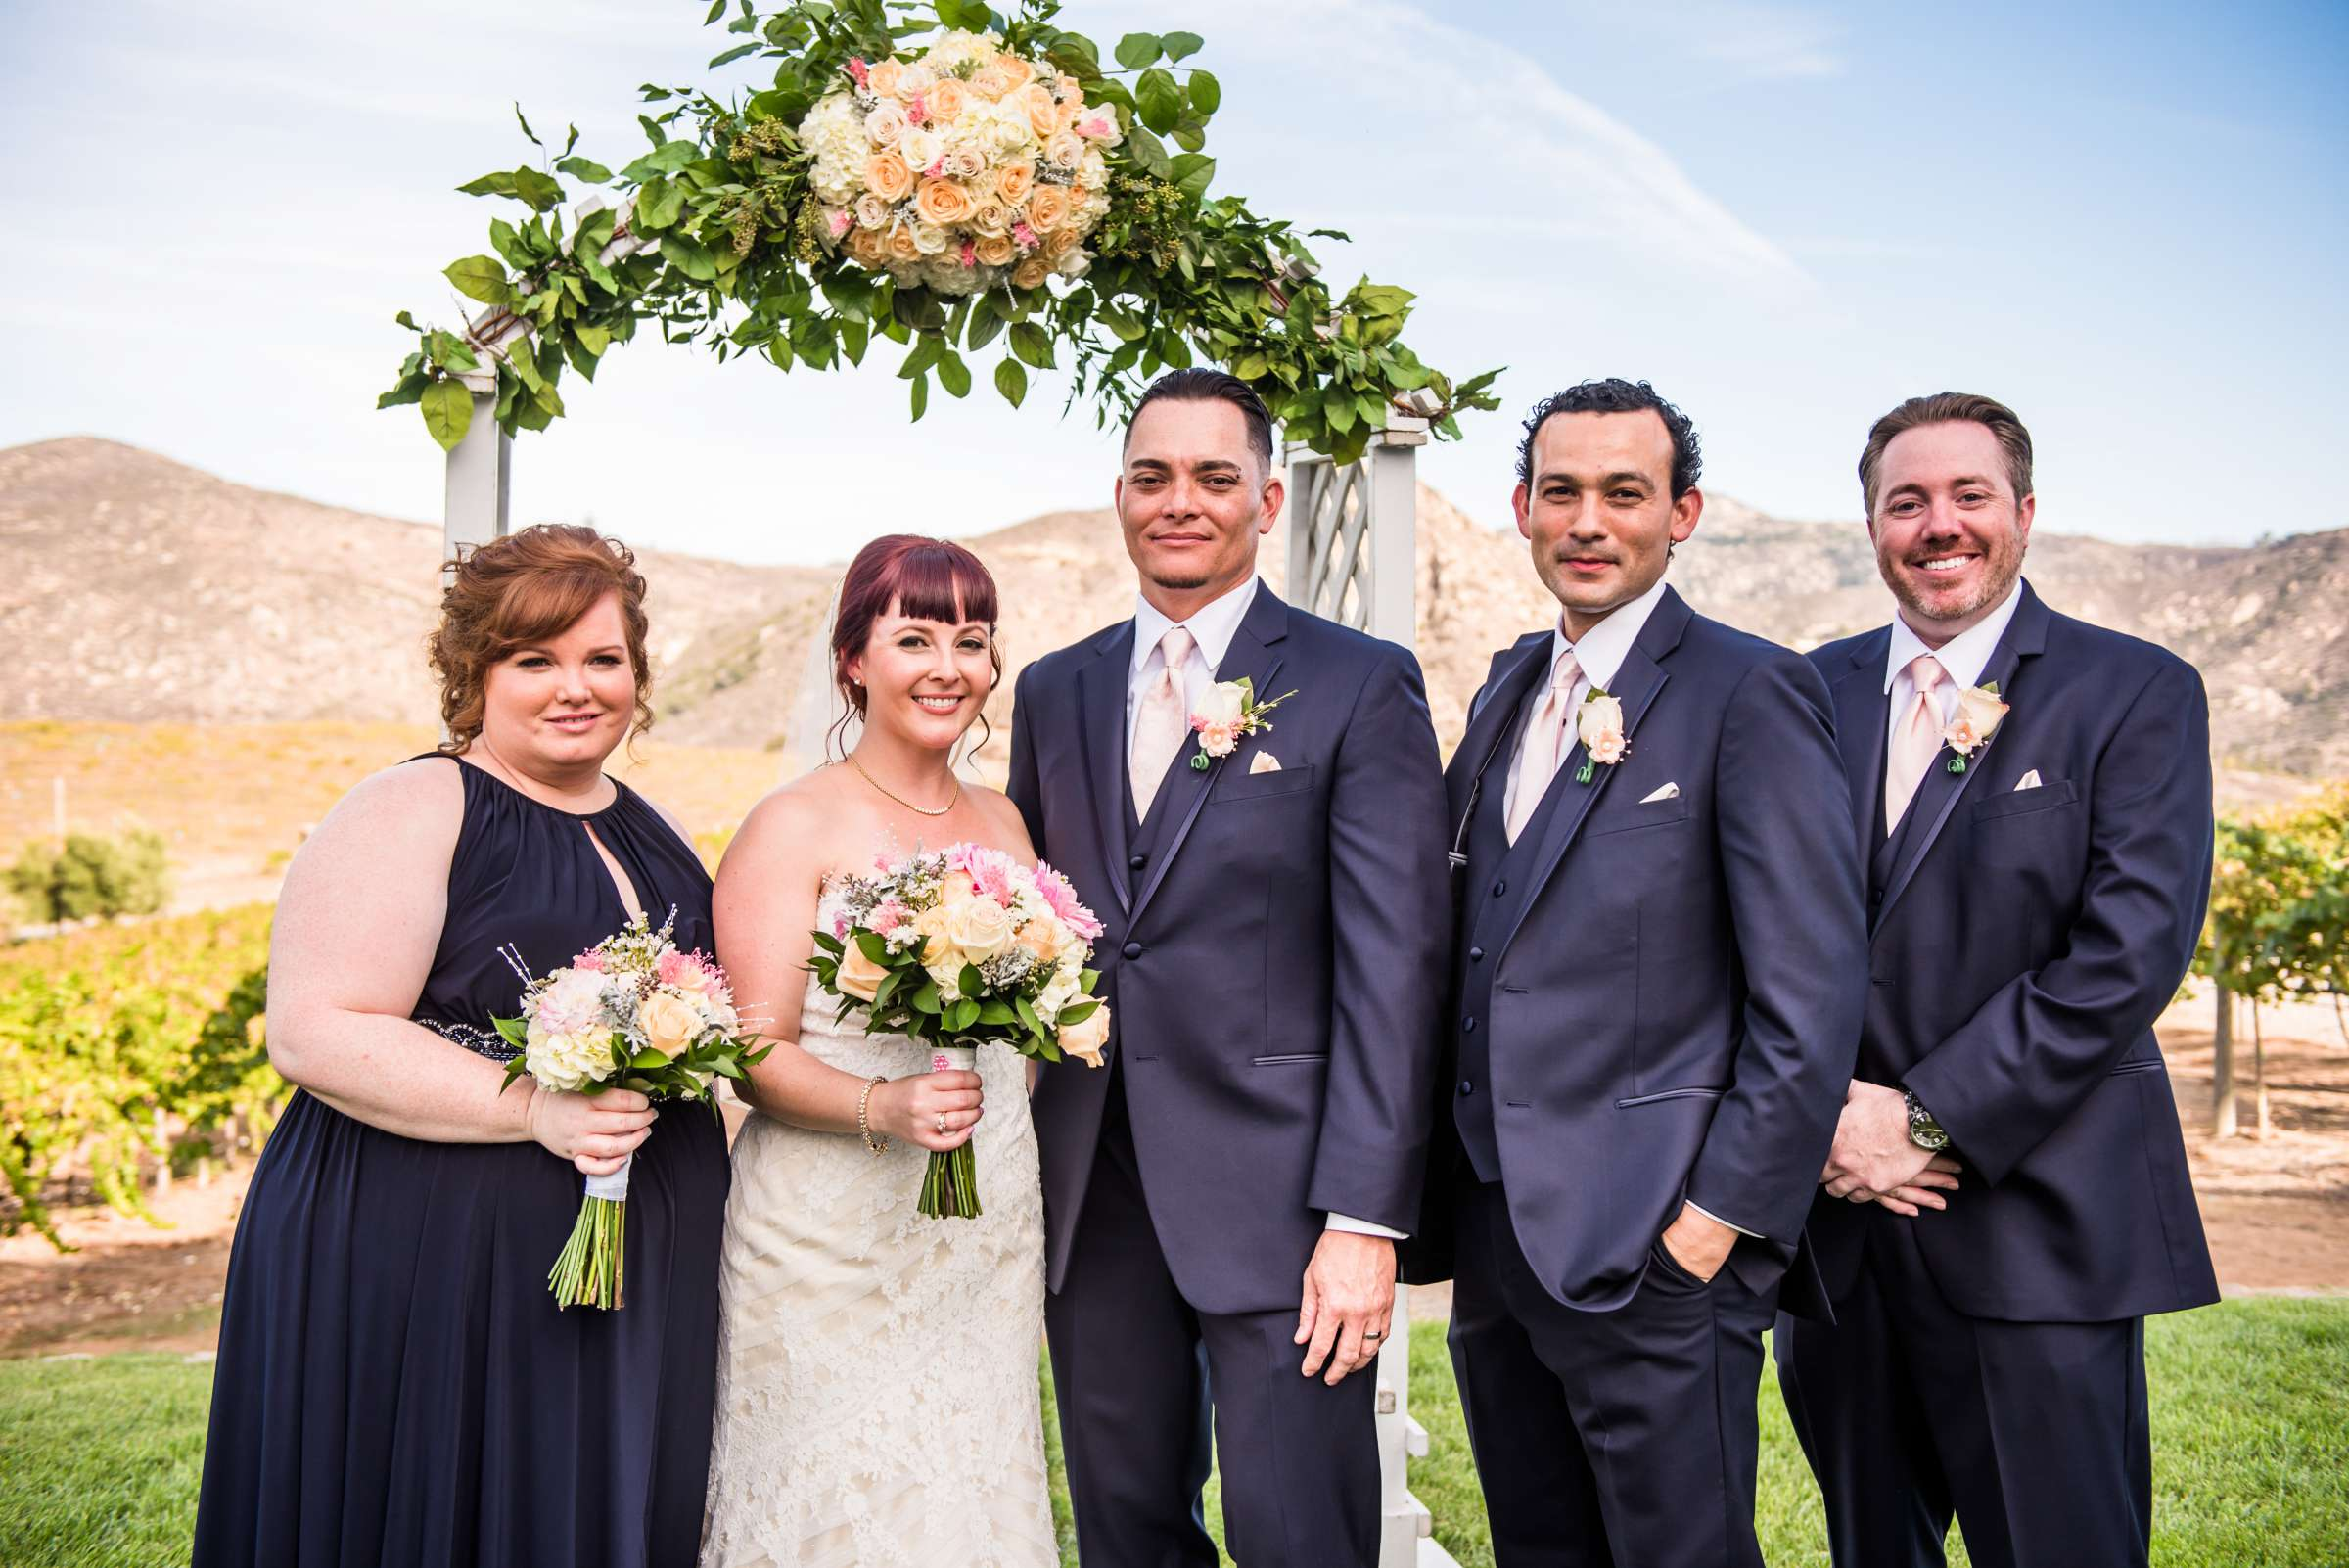 Orfila Vineyards Wedding, Tulasi and Richard Wedding Photo #34 by True Photography